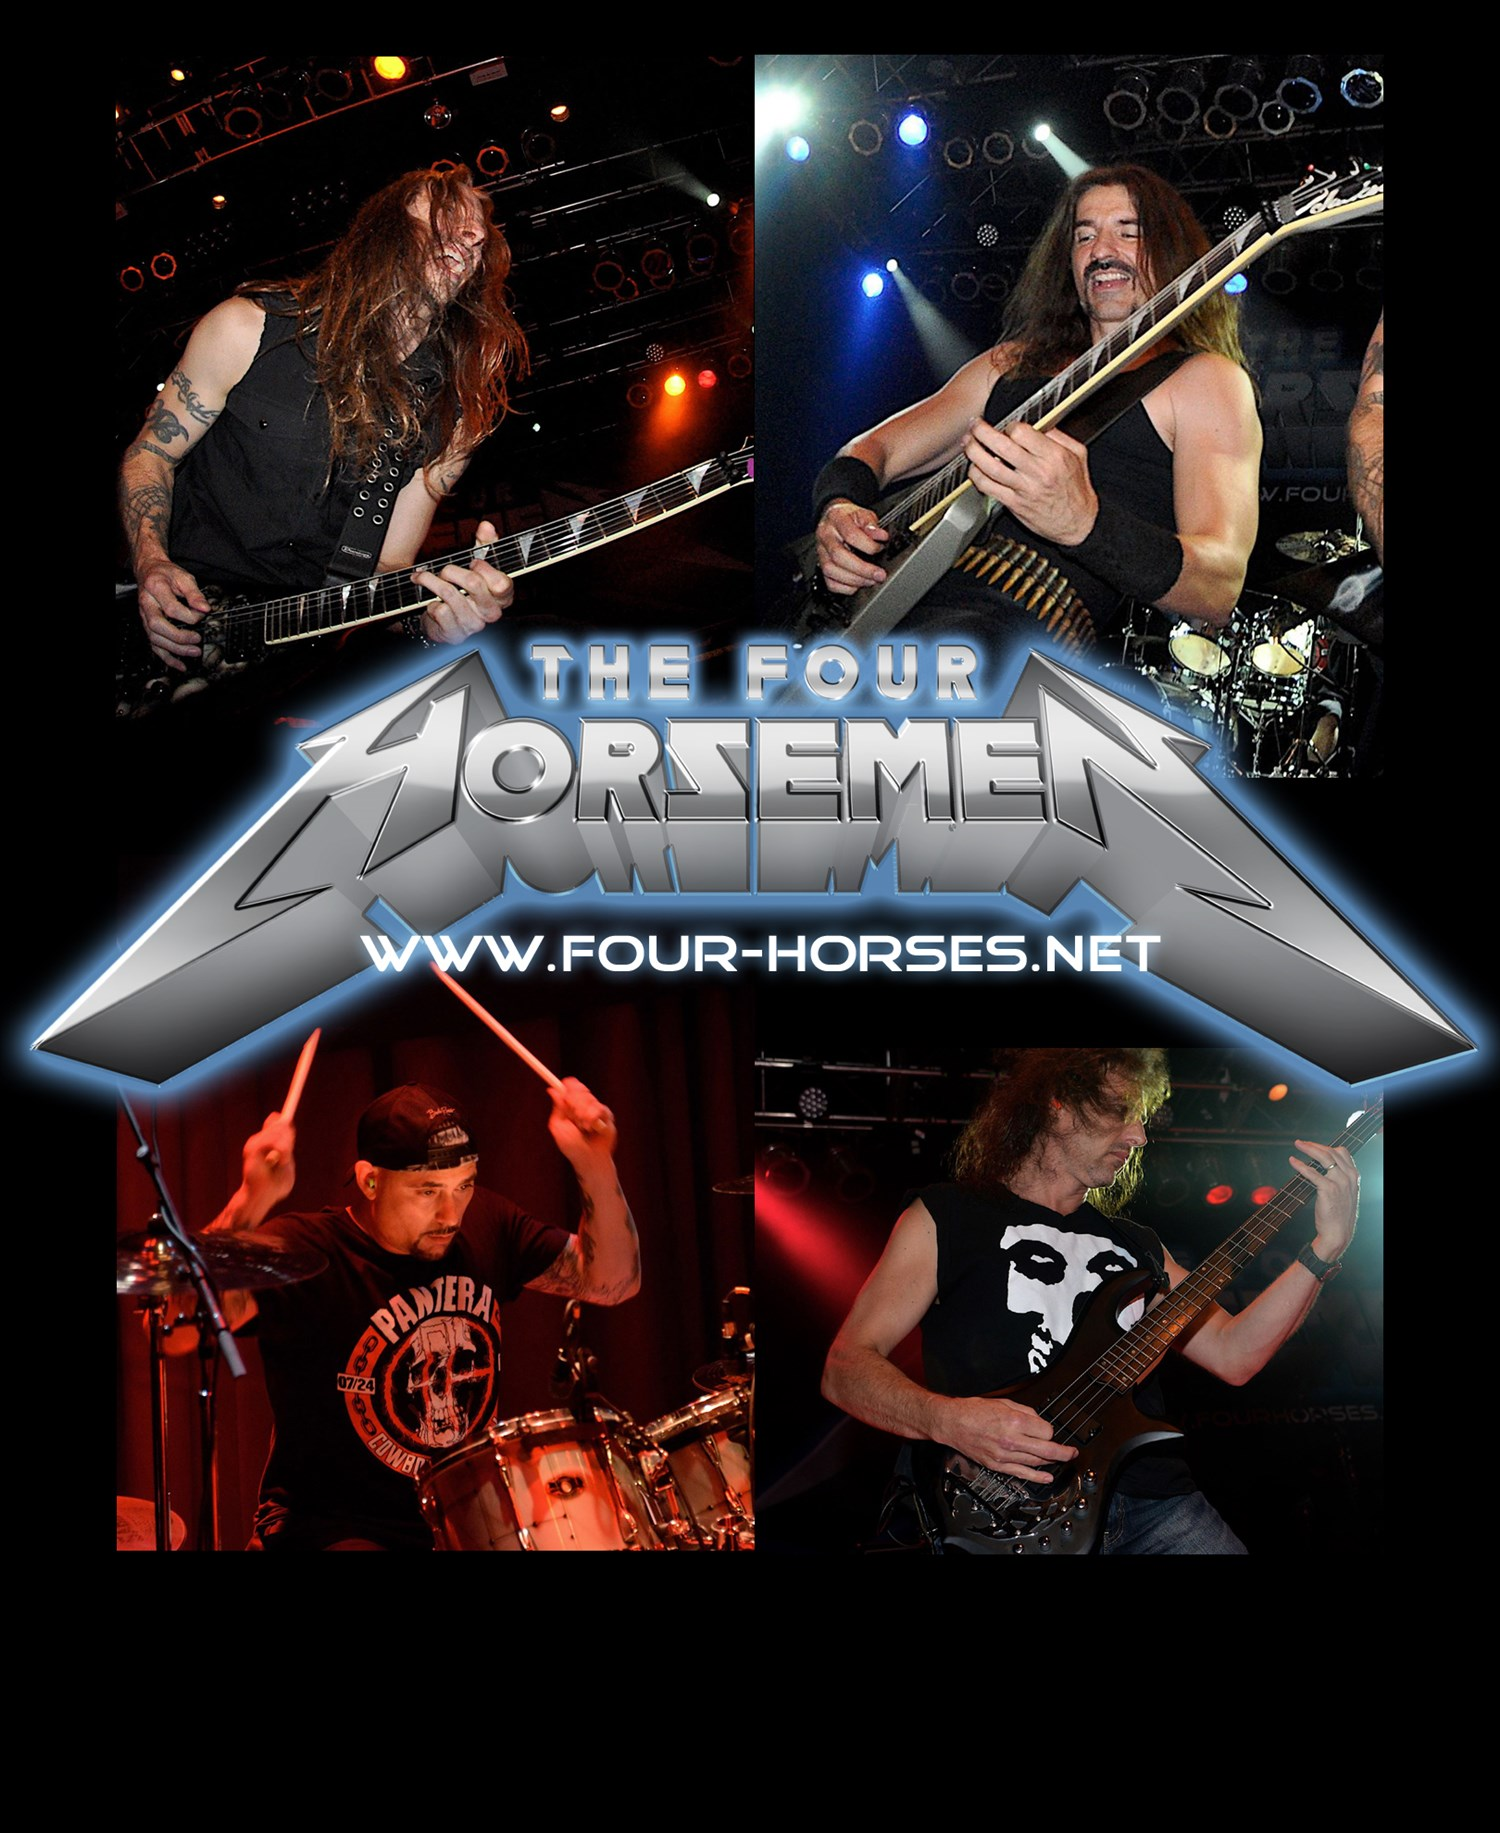 Pavilion @ The Inn Presents: The Four Horsemen 2019 Summer Concert Series on Aug 24, 20:00@Aurora Inn Hotel & Event Center - Pick a seat, Buy tickets and Get information on Pavilion @ The Inn